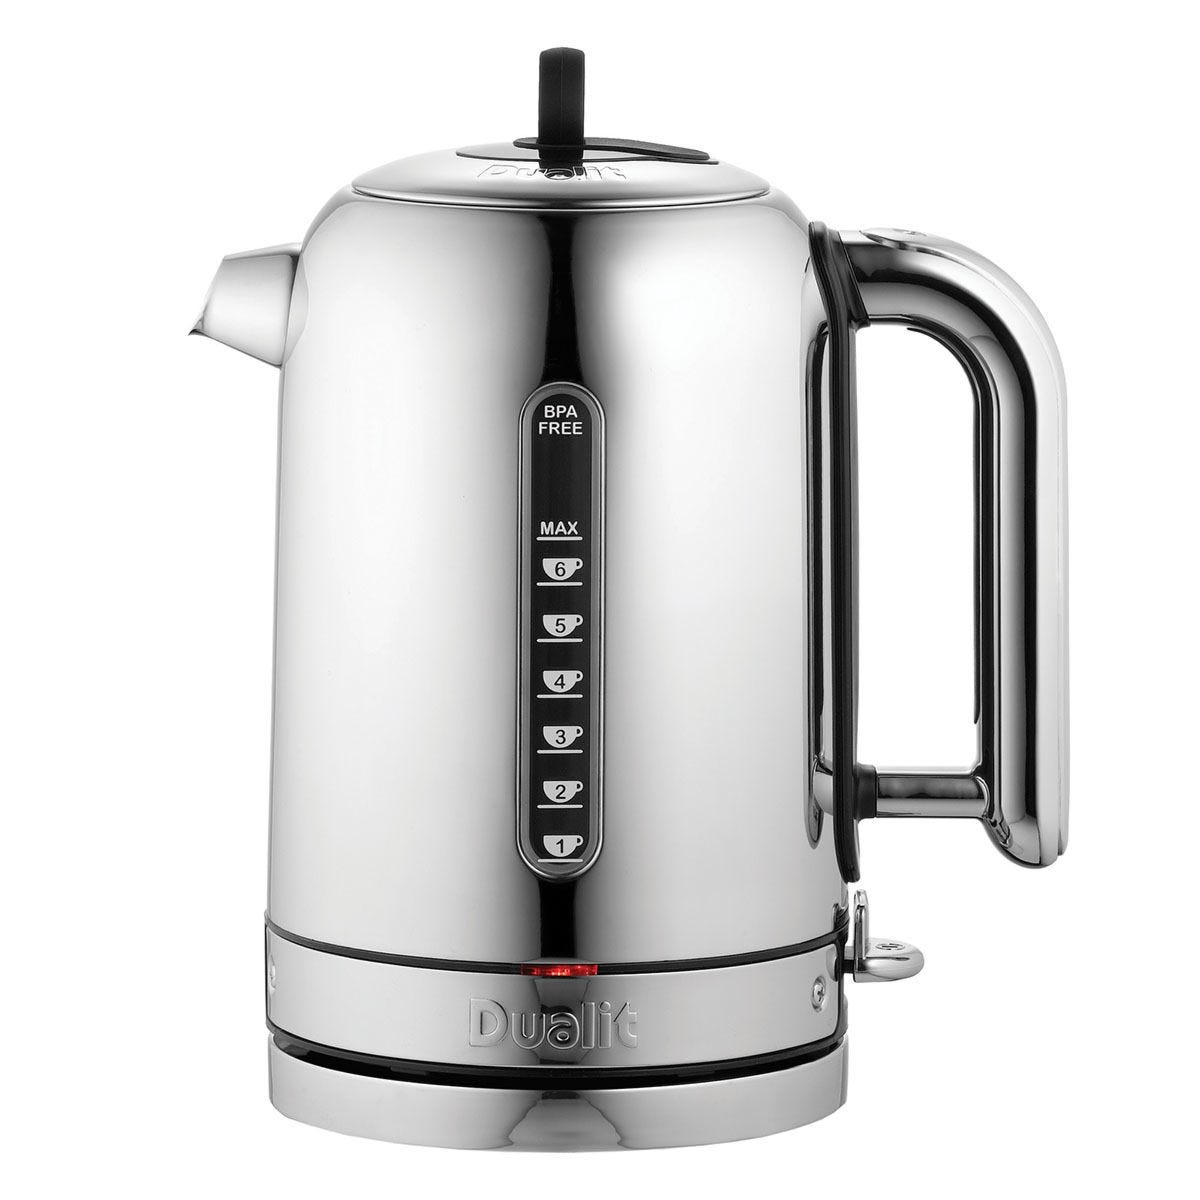 Dualit Classic 1.7L Polished Stainless Steel Kettle - Silver